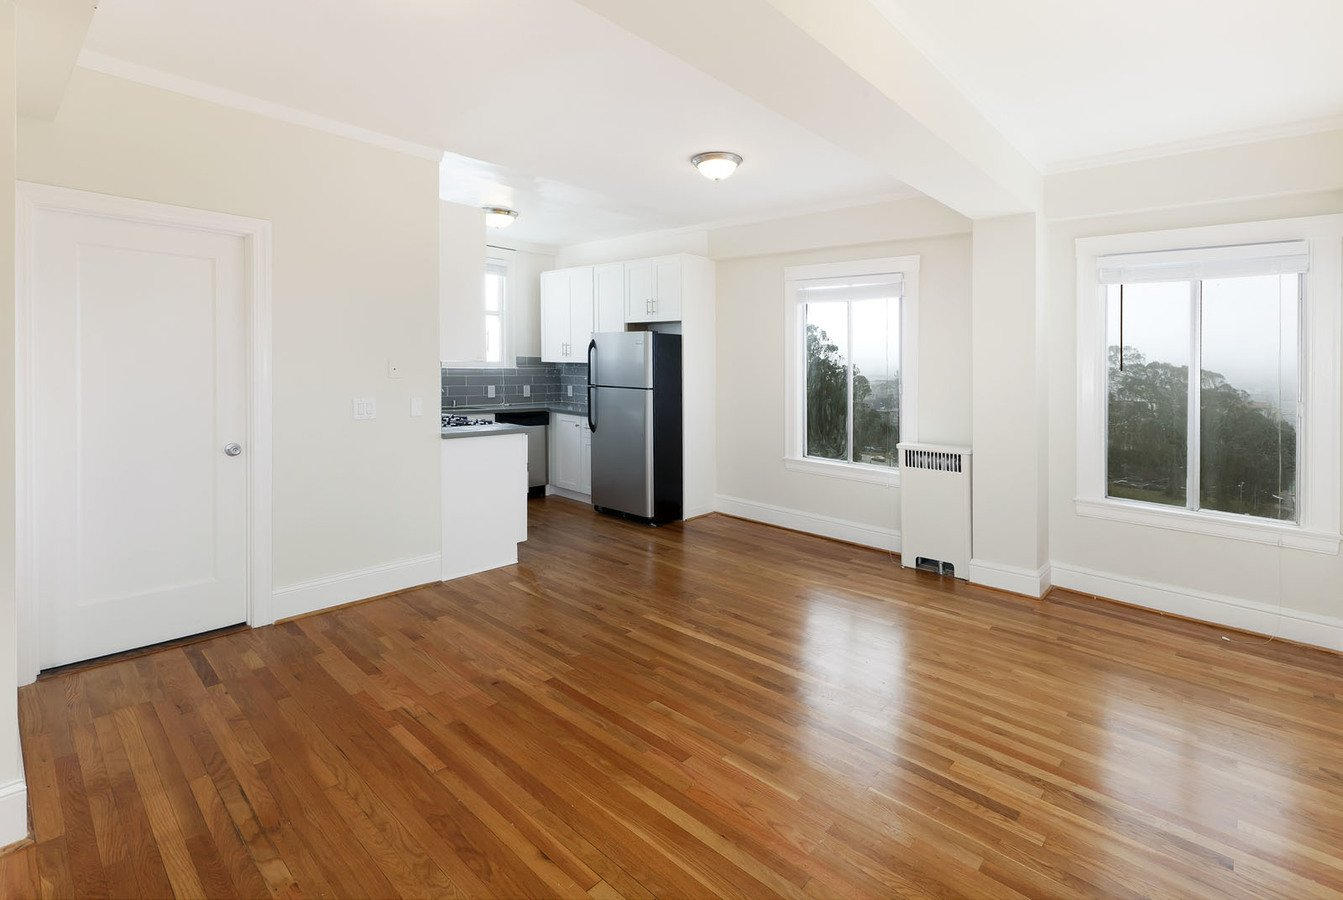 1 Bedroom 1 Bathroom Apartment for rent at 500 Stanyan Apartments in San Francisco, CA